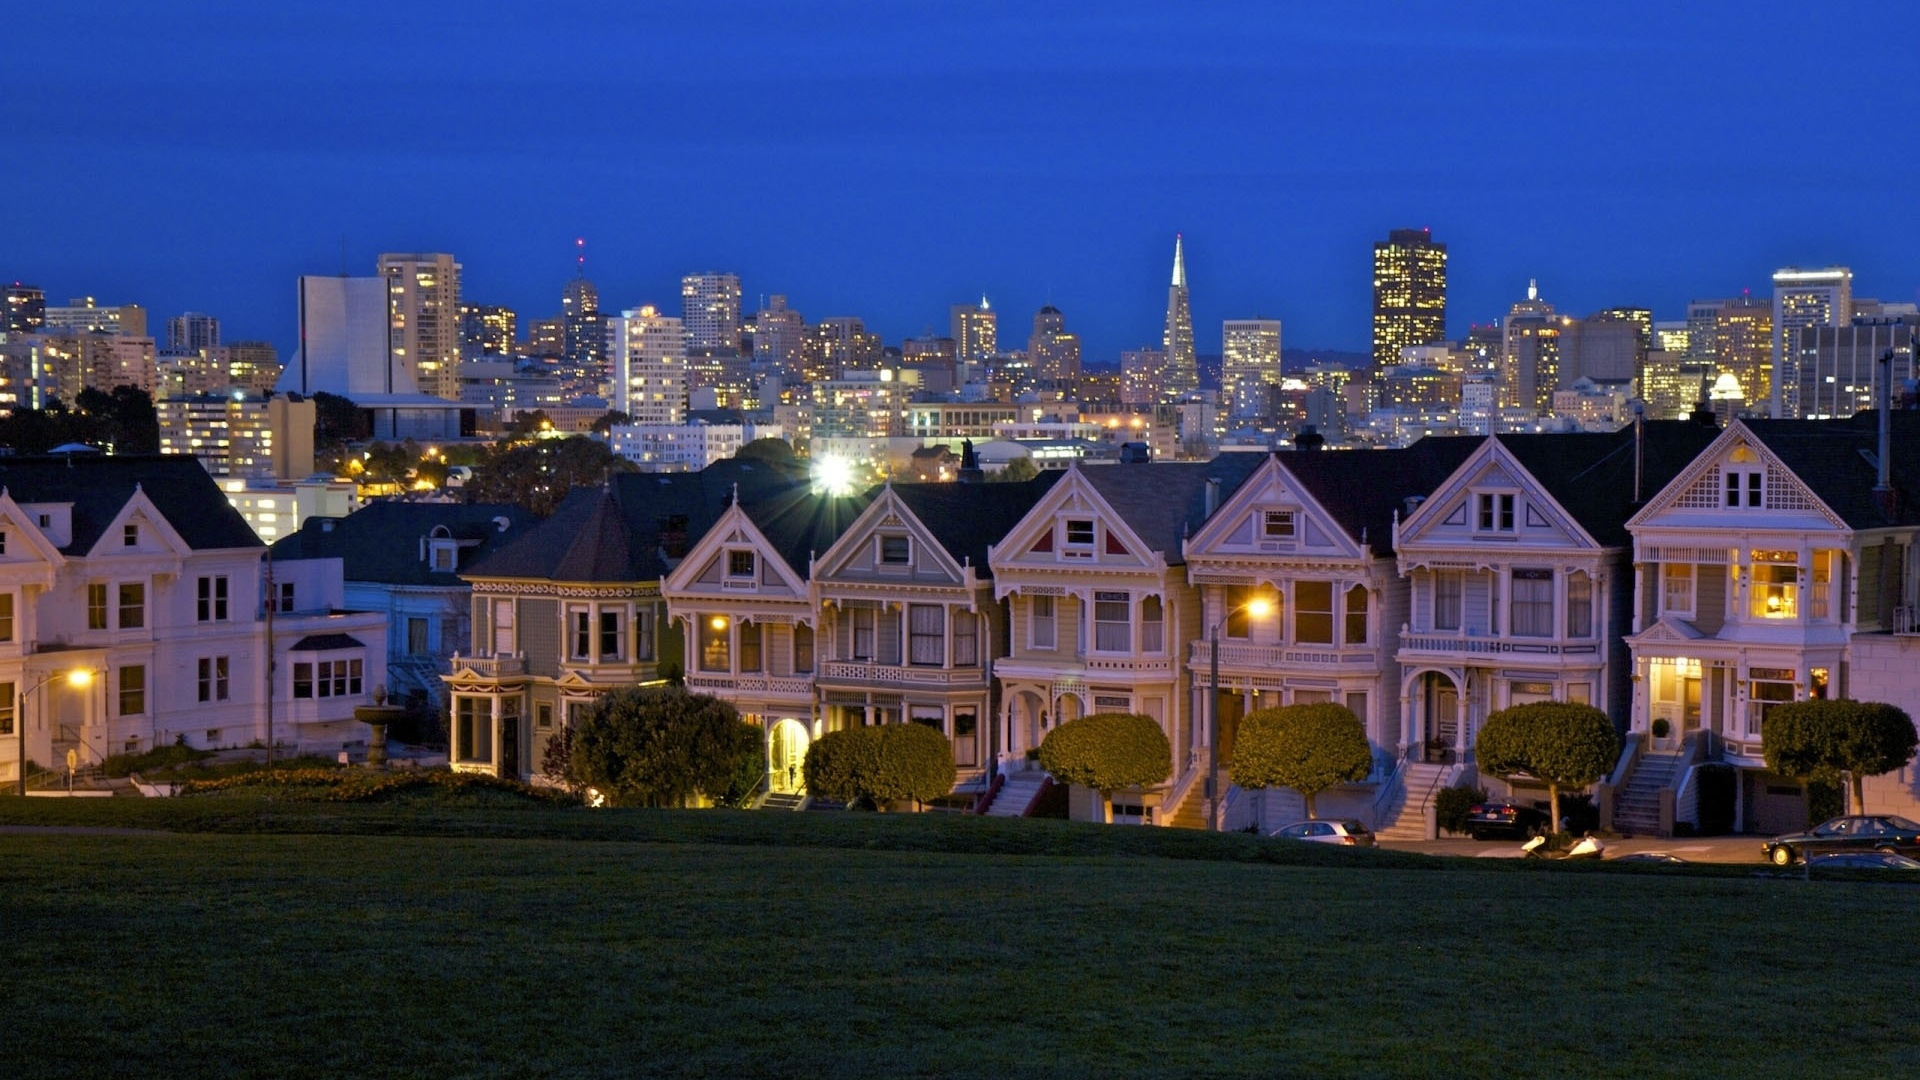 1920x1080 Building House San francisco California Usa Wallpaper 1920x1080